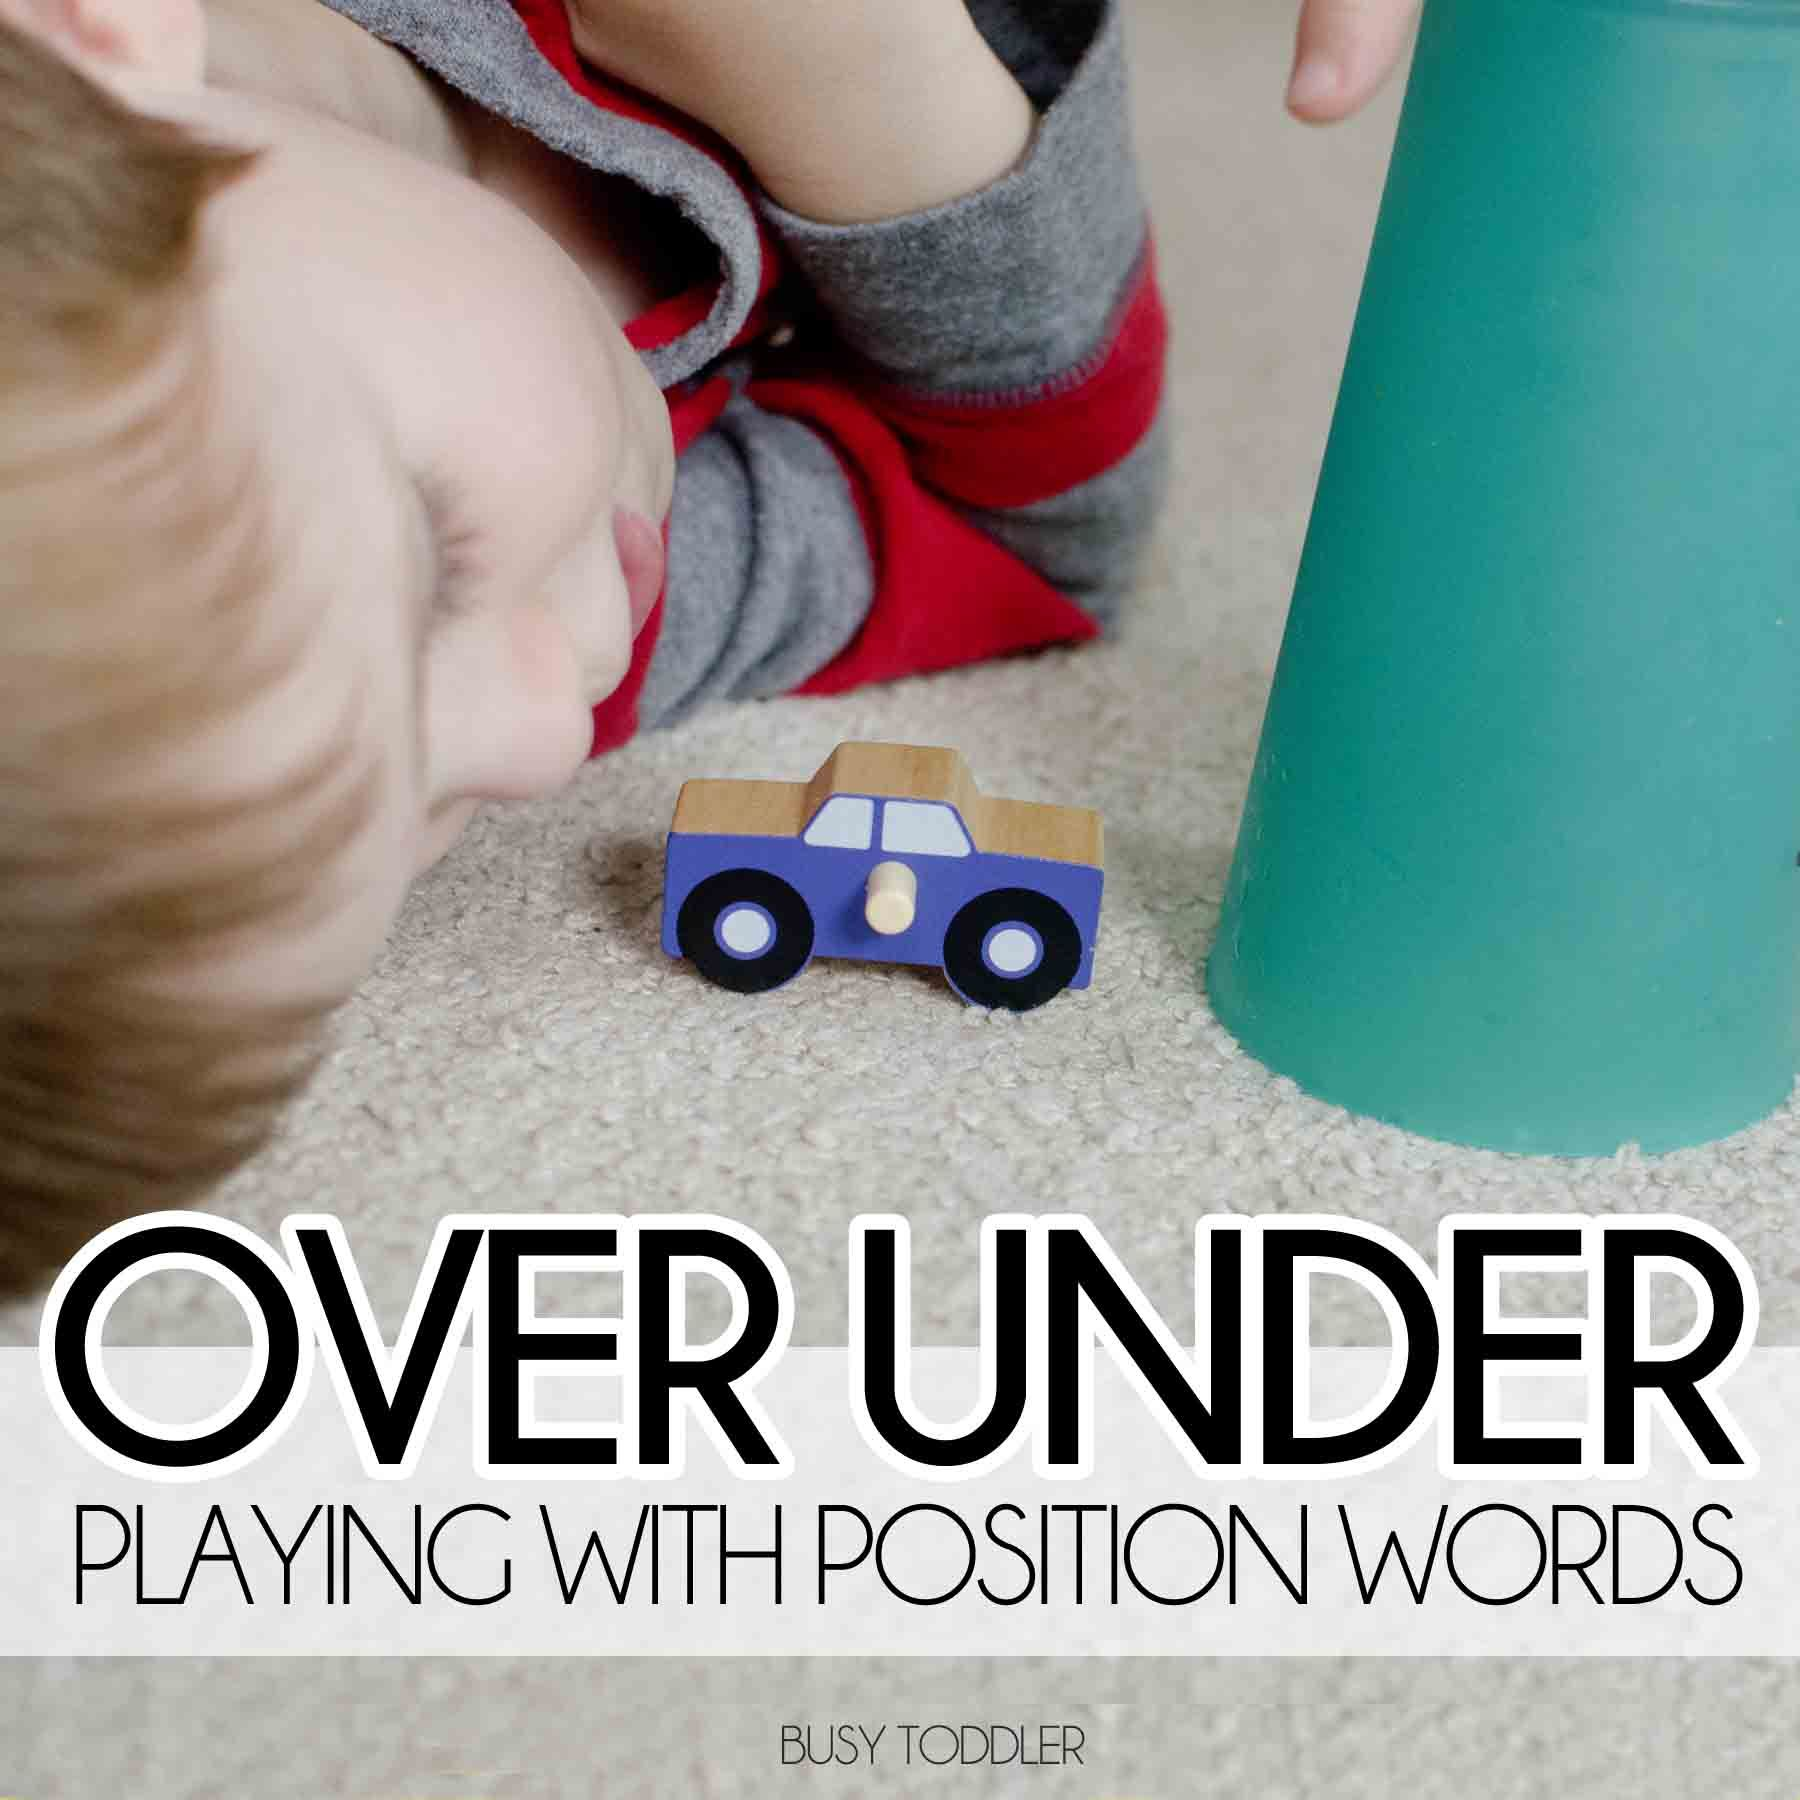 Position Words The Over Under Game